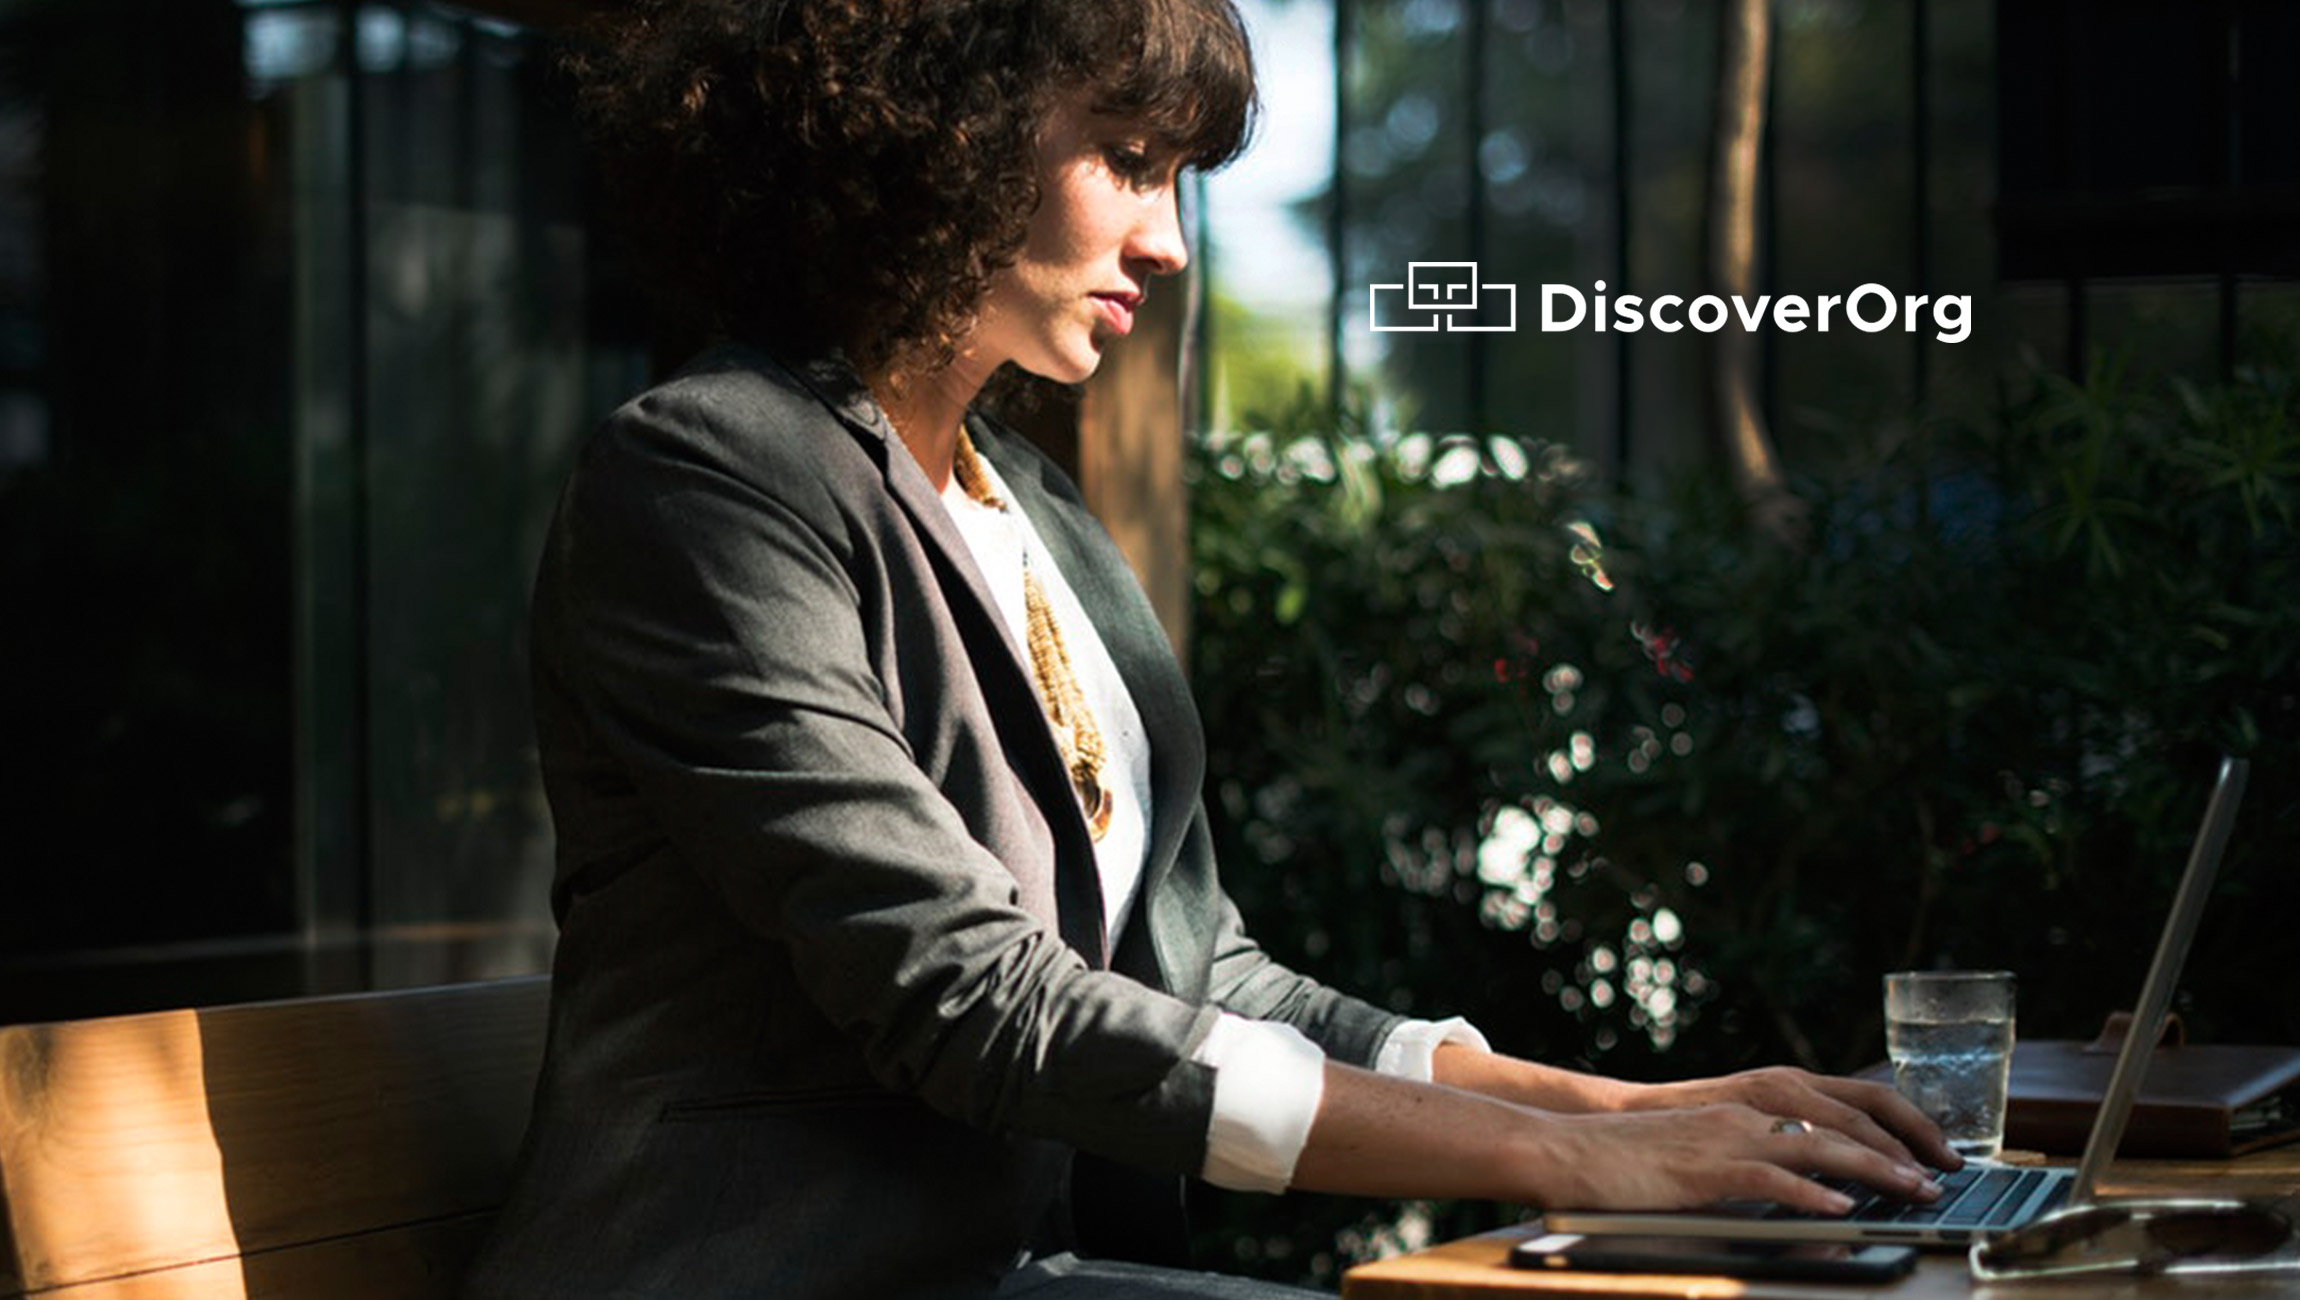 DiscoverOrg Expands Leading B2B Database Beyond the Enterprise with 400% Growth in Coverage